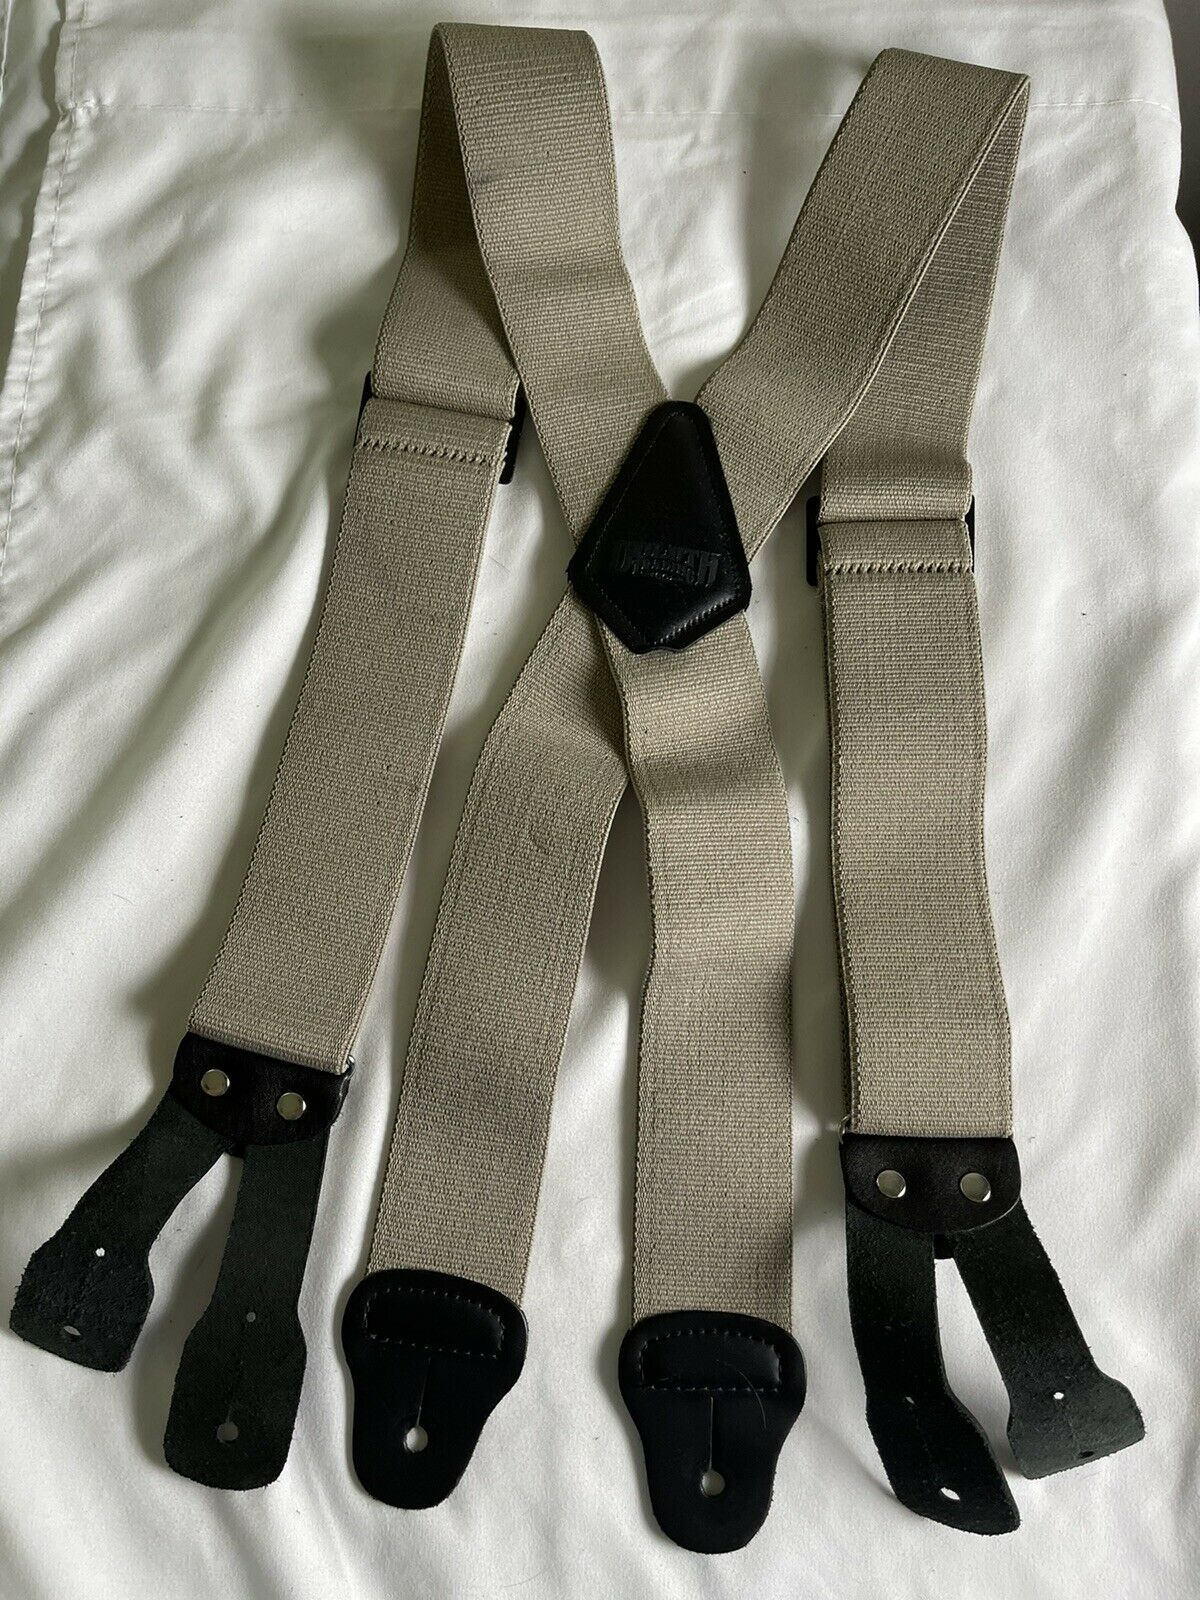 Duluth Trading Company Suspenders Men's Tan Brown Button Adjustable Straps